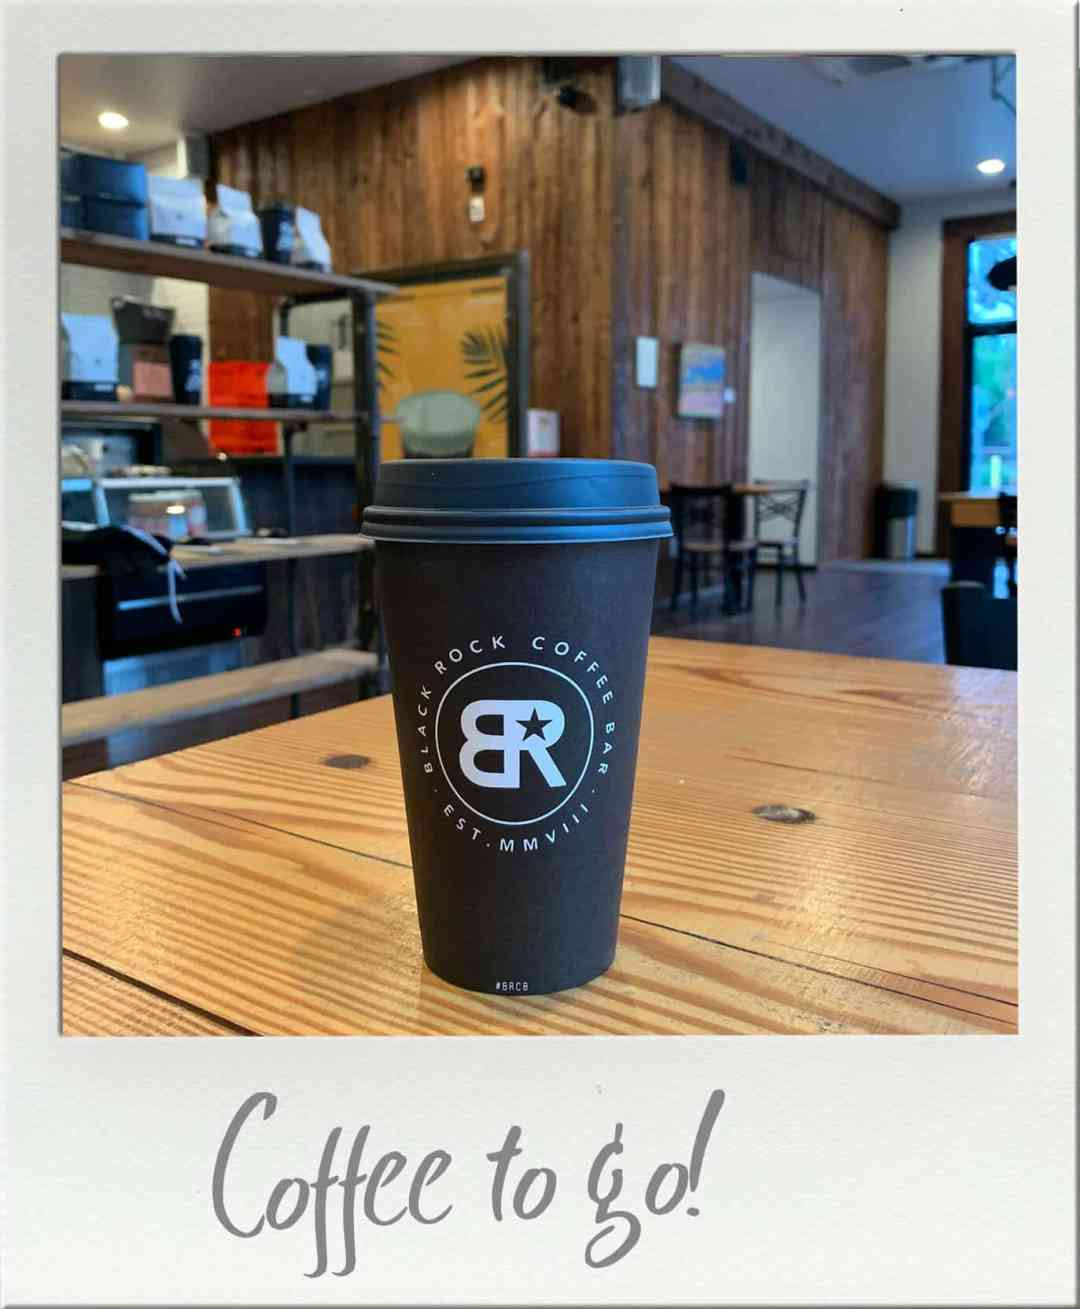 Black Rock Coffee in To Go cup